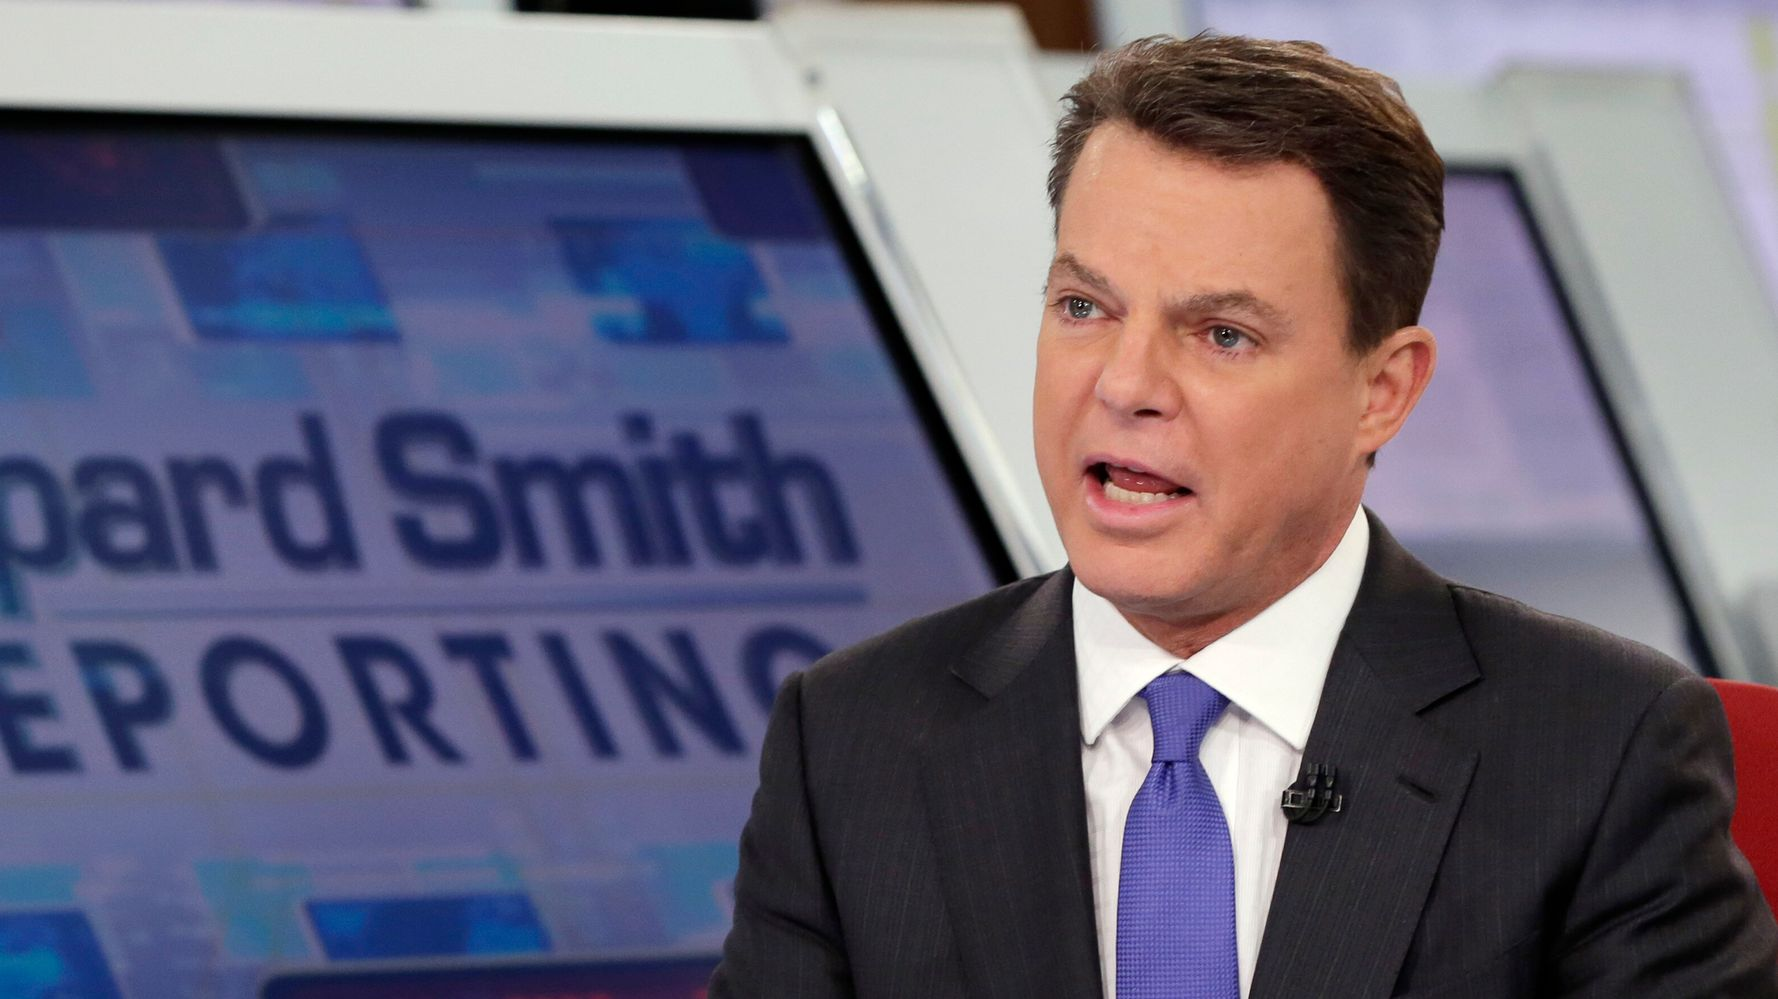 Westlake Legal Group 5d967f872200007d03dcea85 Shepard Smith Dunks Trump: President 'May Have Violated Federal Law... On Live TV'